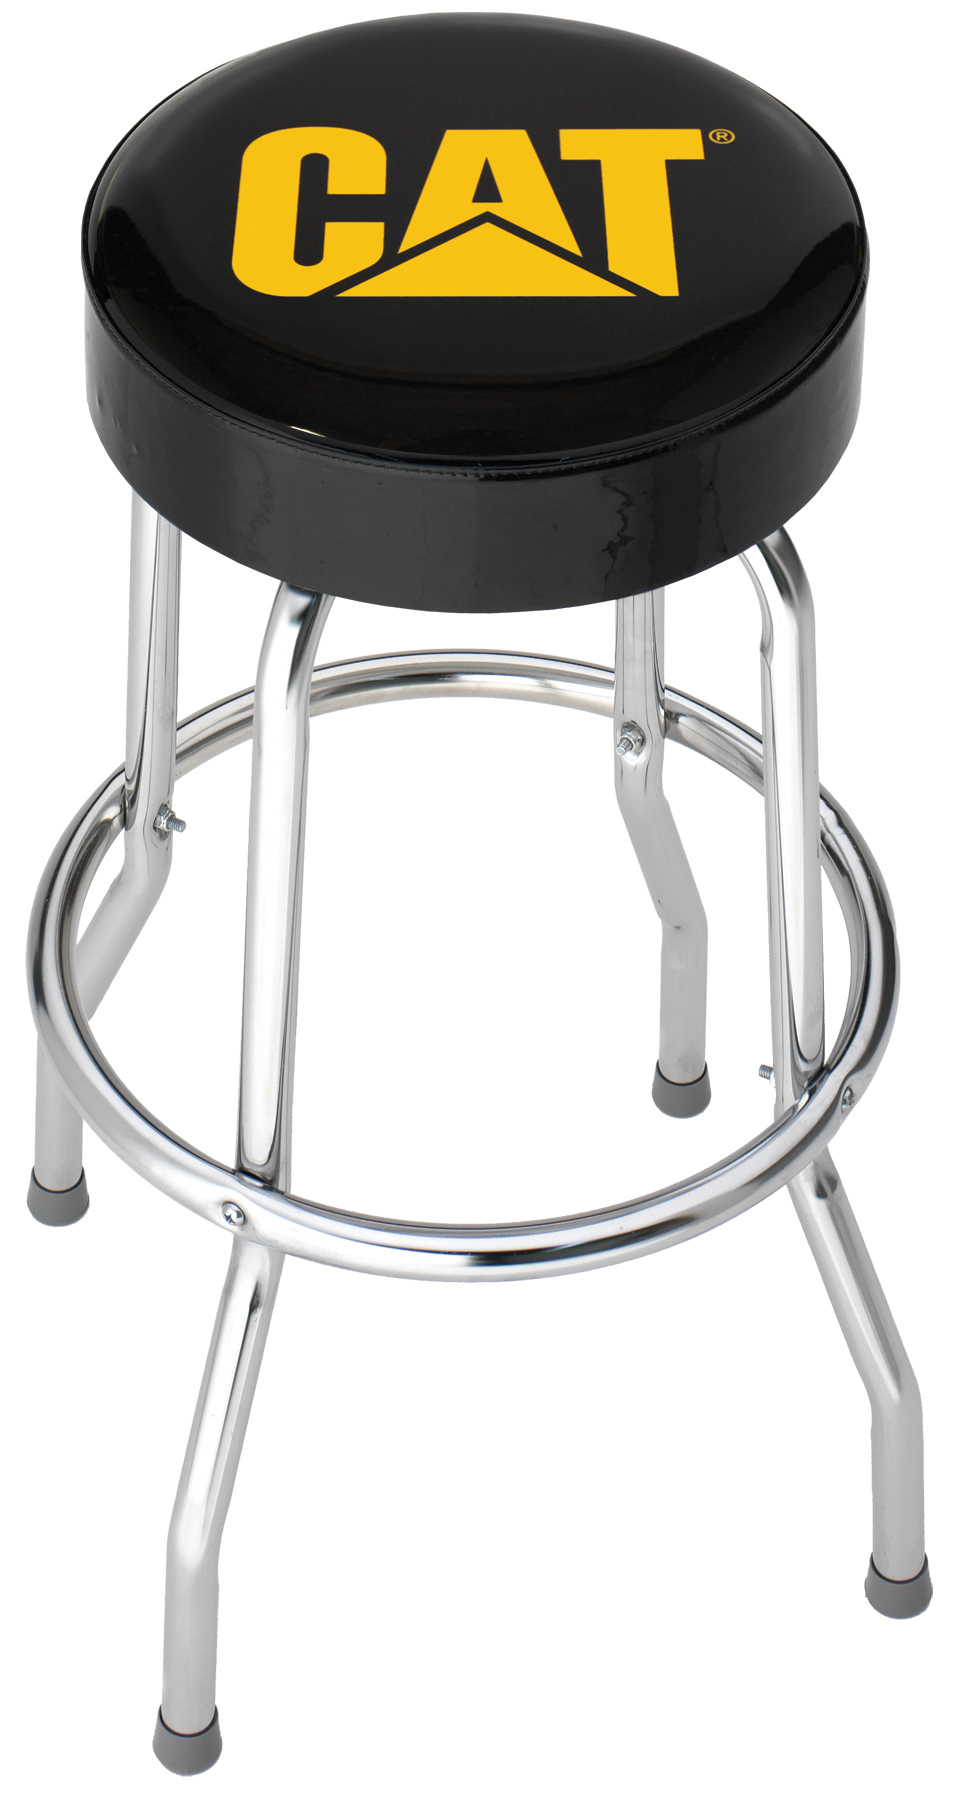 caterpillar cat chrome plated garage shop bar stool caterpillar merchandise